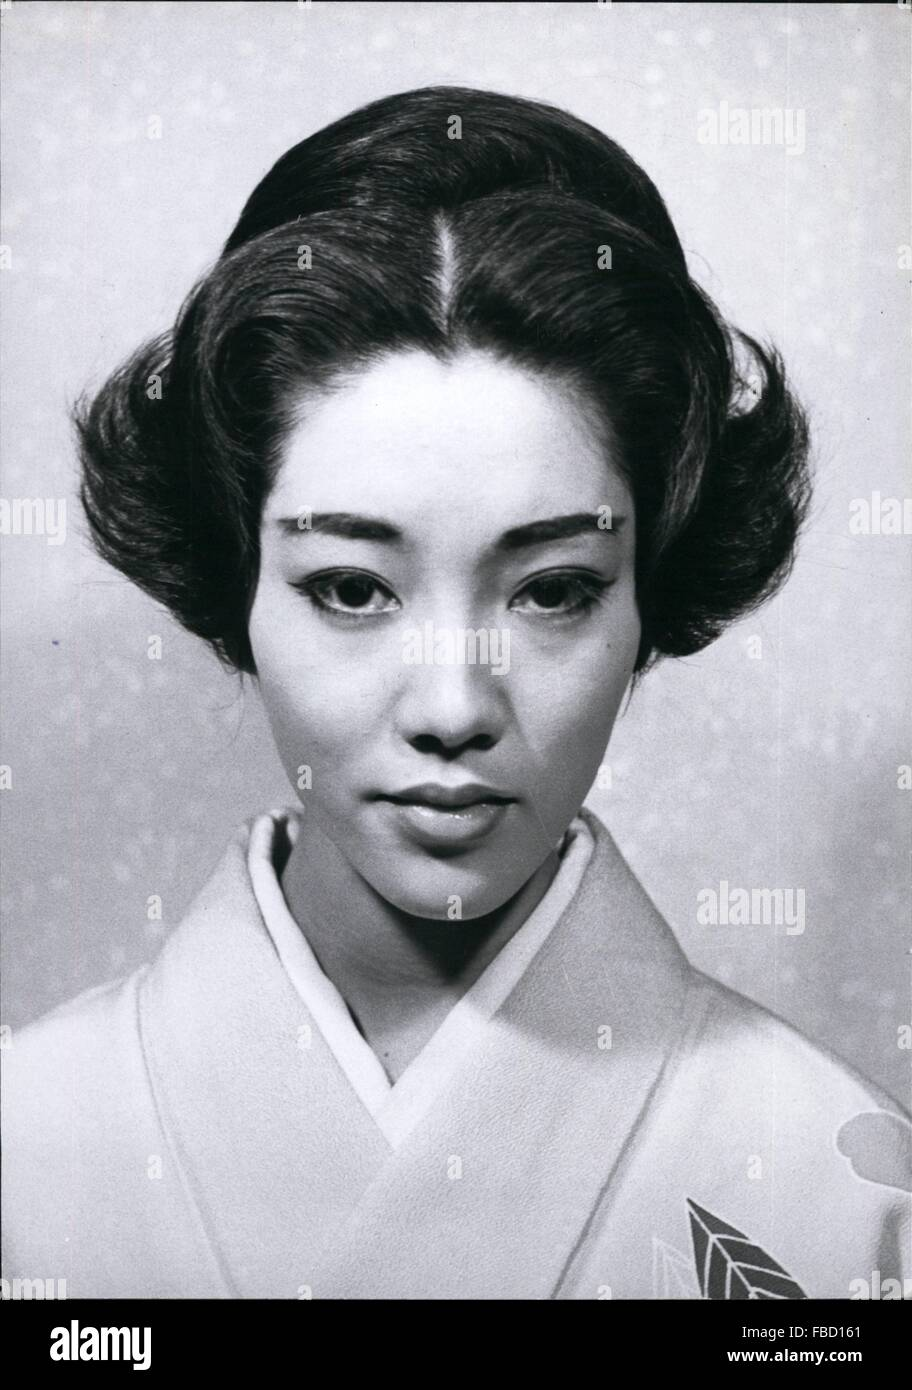 1962 - european hairstyles for japanese girls demonstrated in